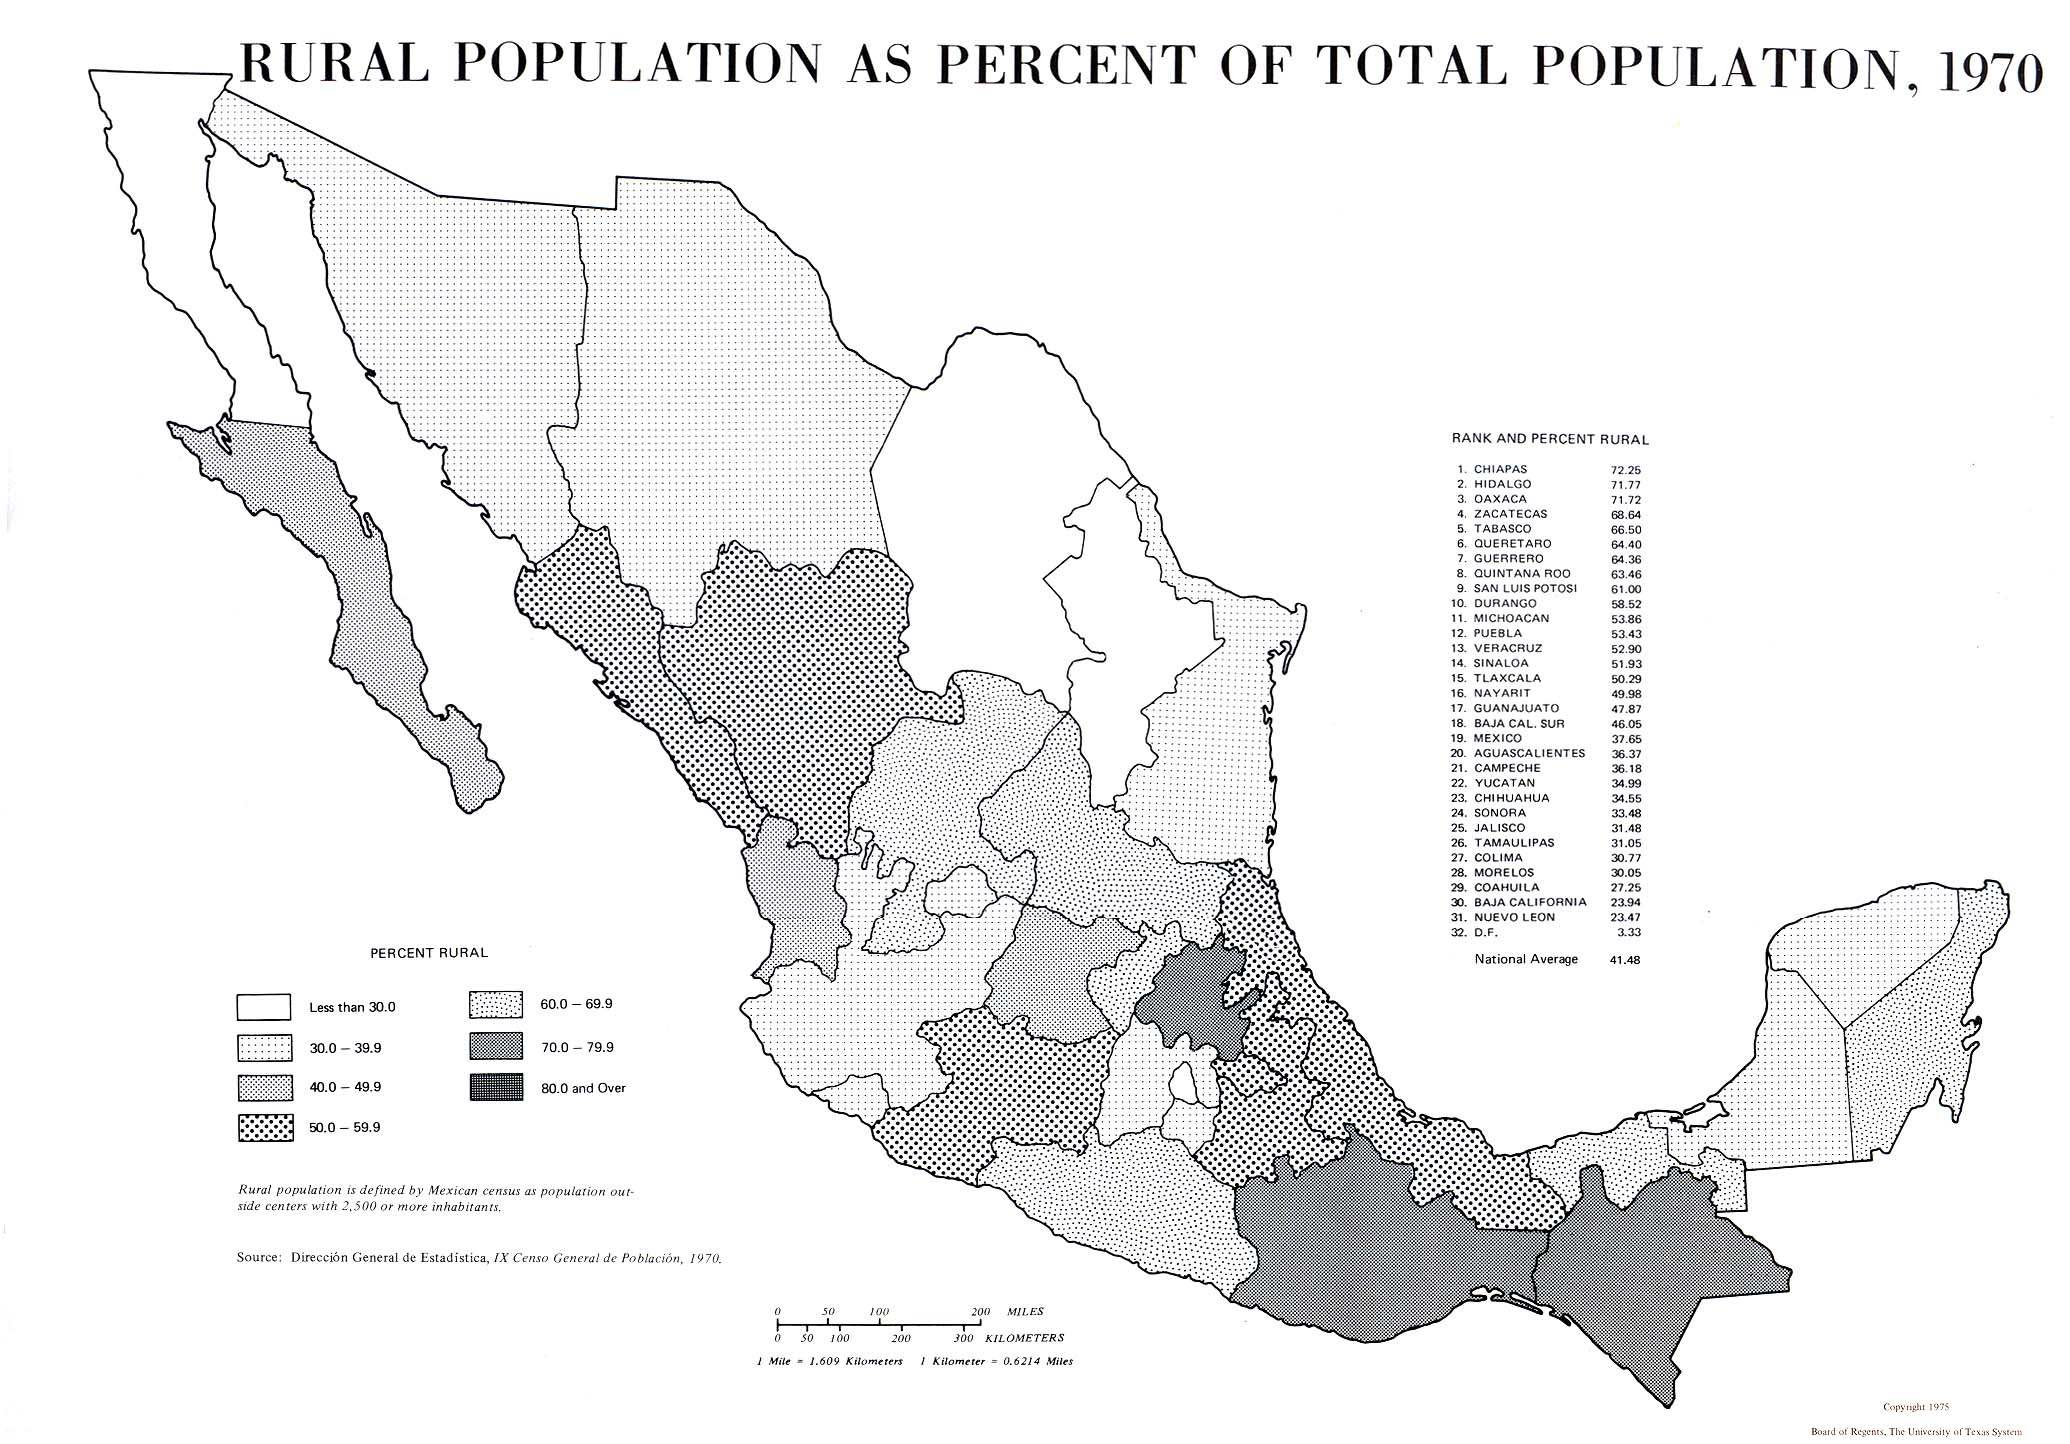 Map of Rural Population as Percent of Total Population, Mexico